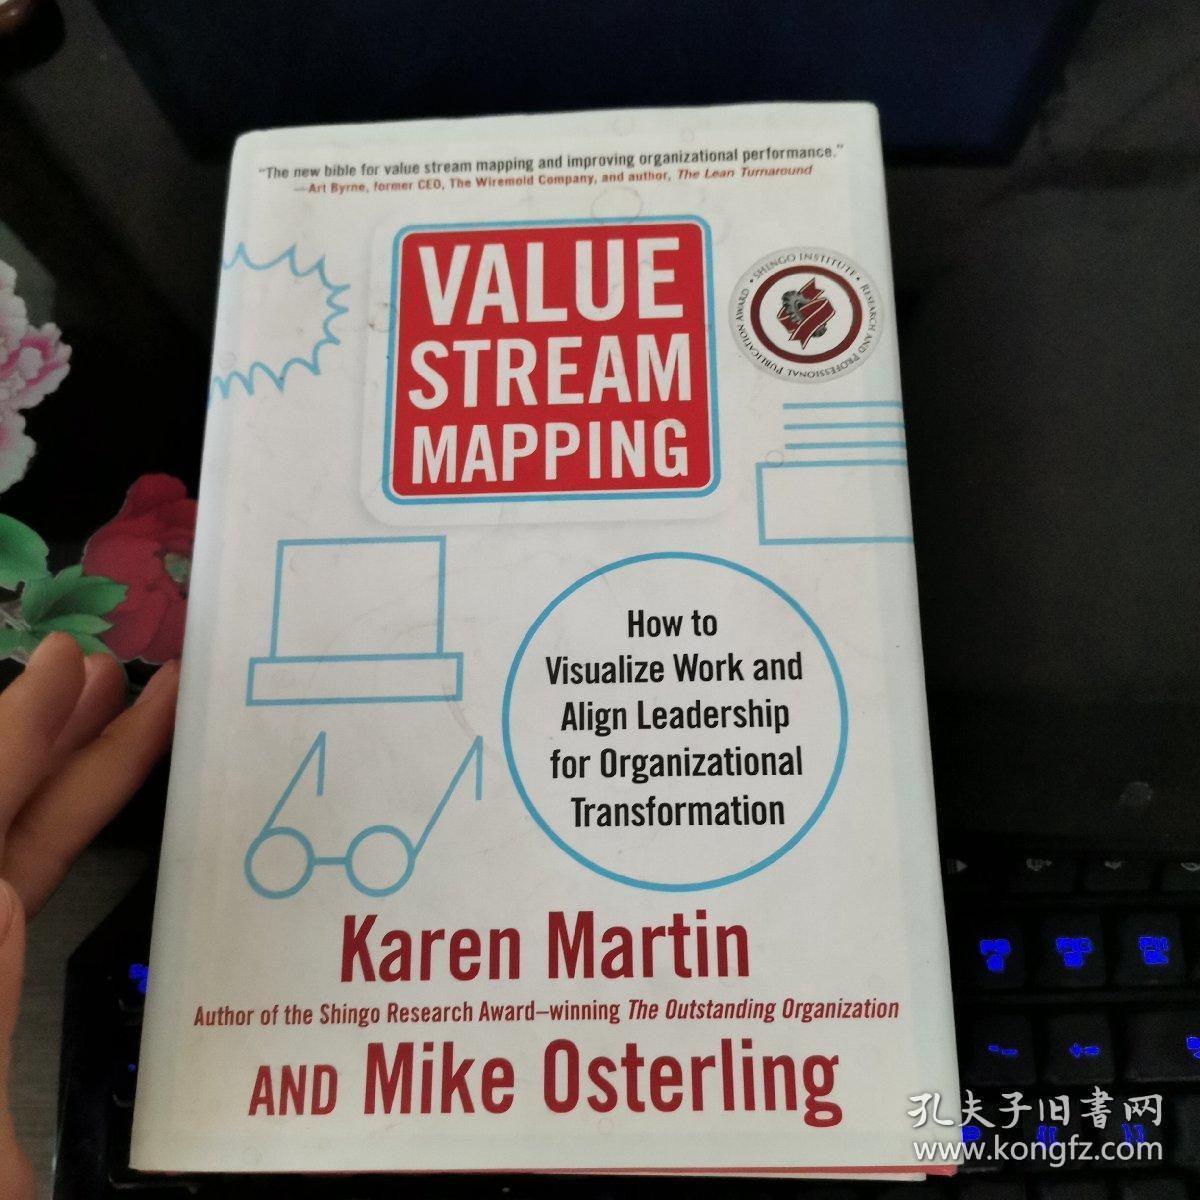 Value Stream Mapping: How to Visualize Work and